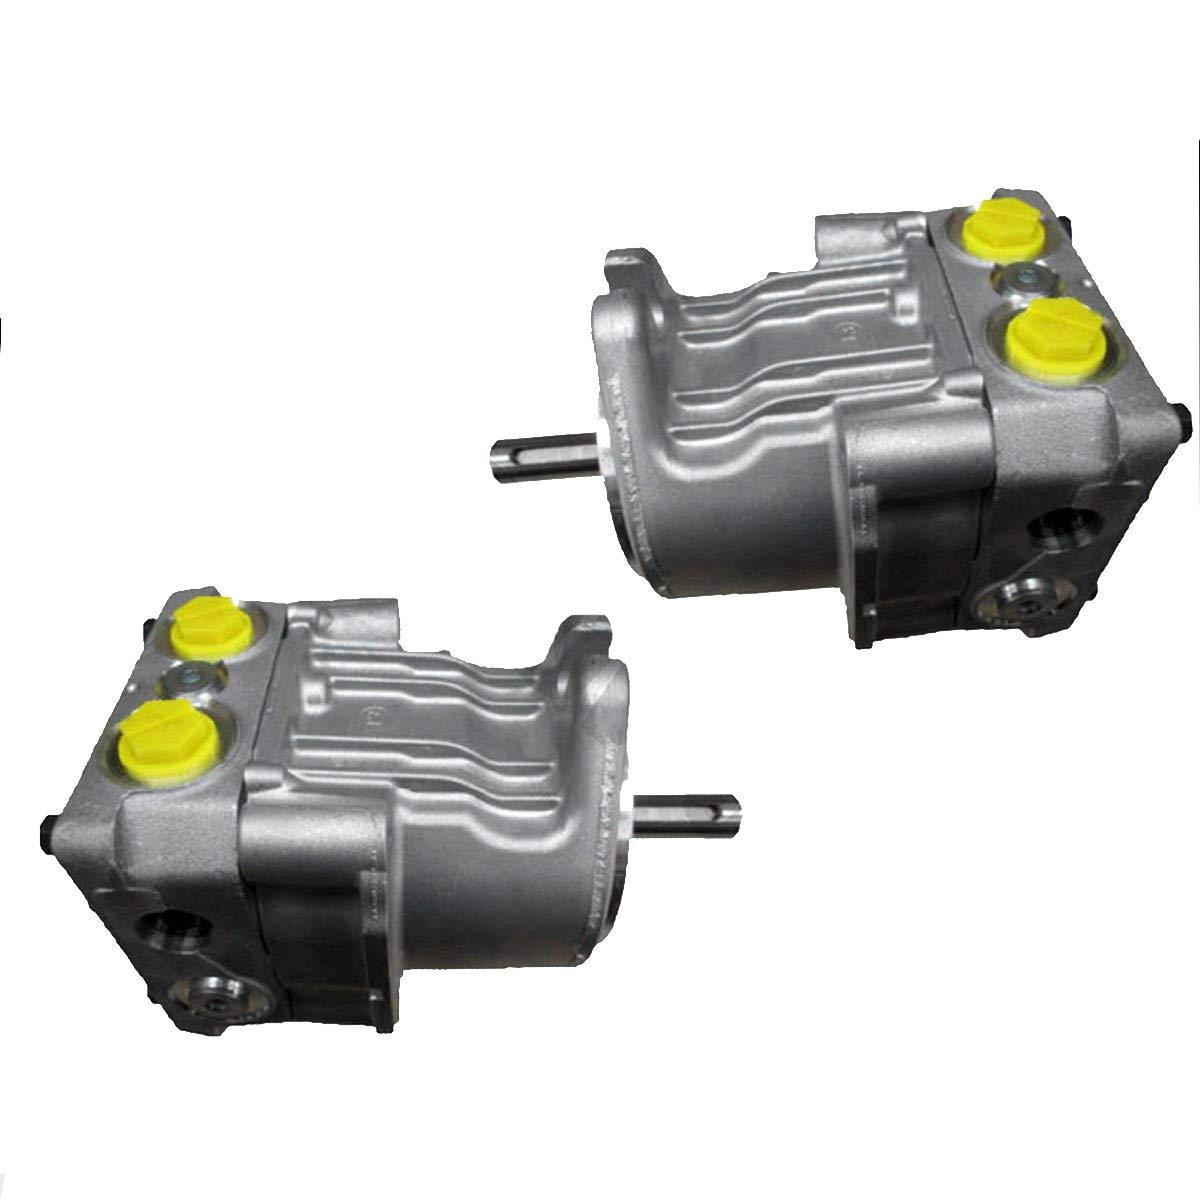 Hydro Gear Pump (Right & Left) Kit 10cc for Wright SM Frame Stander Mower & Other / PE-1KQQ-DN1X-XXXX, PE-1HQQ-DP1X-XXXX